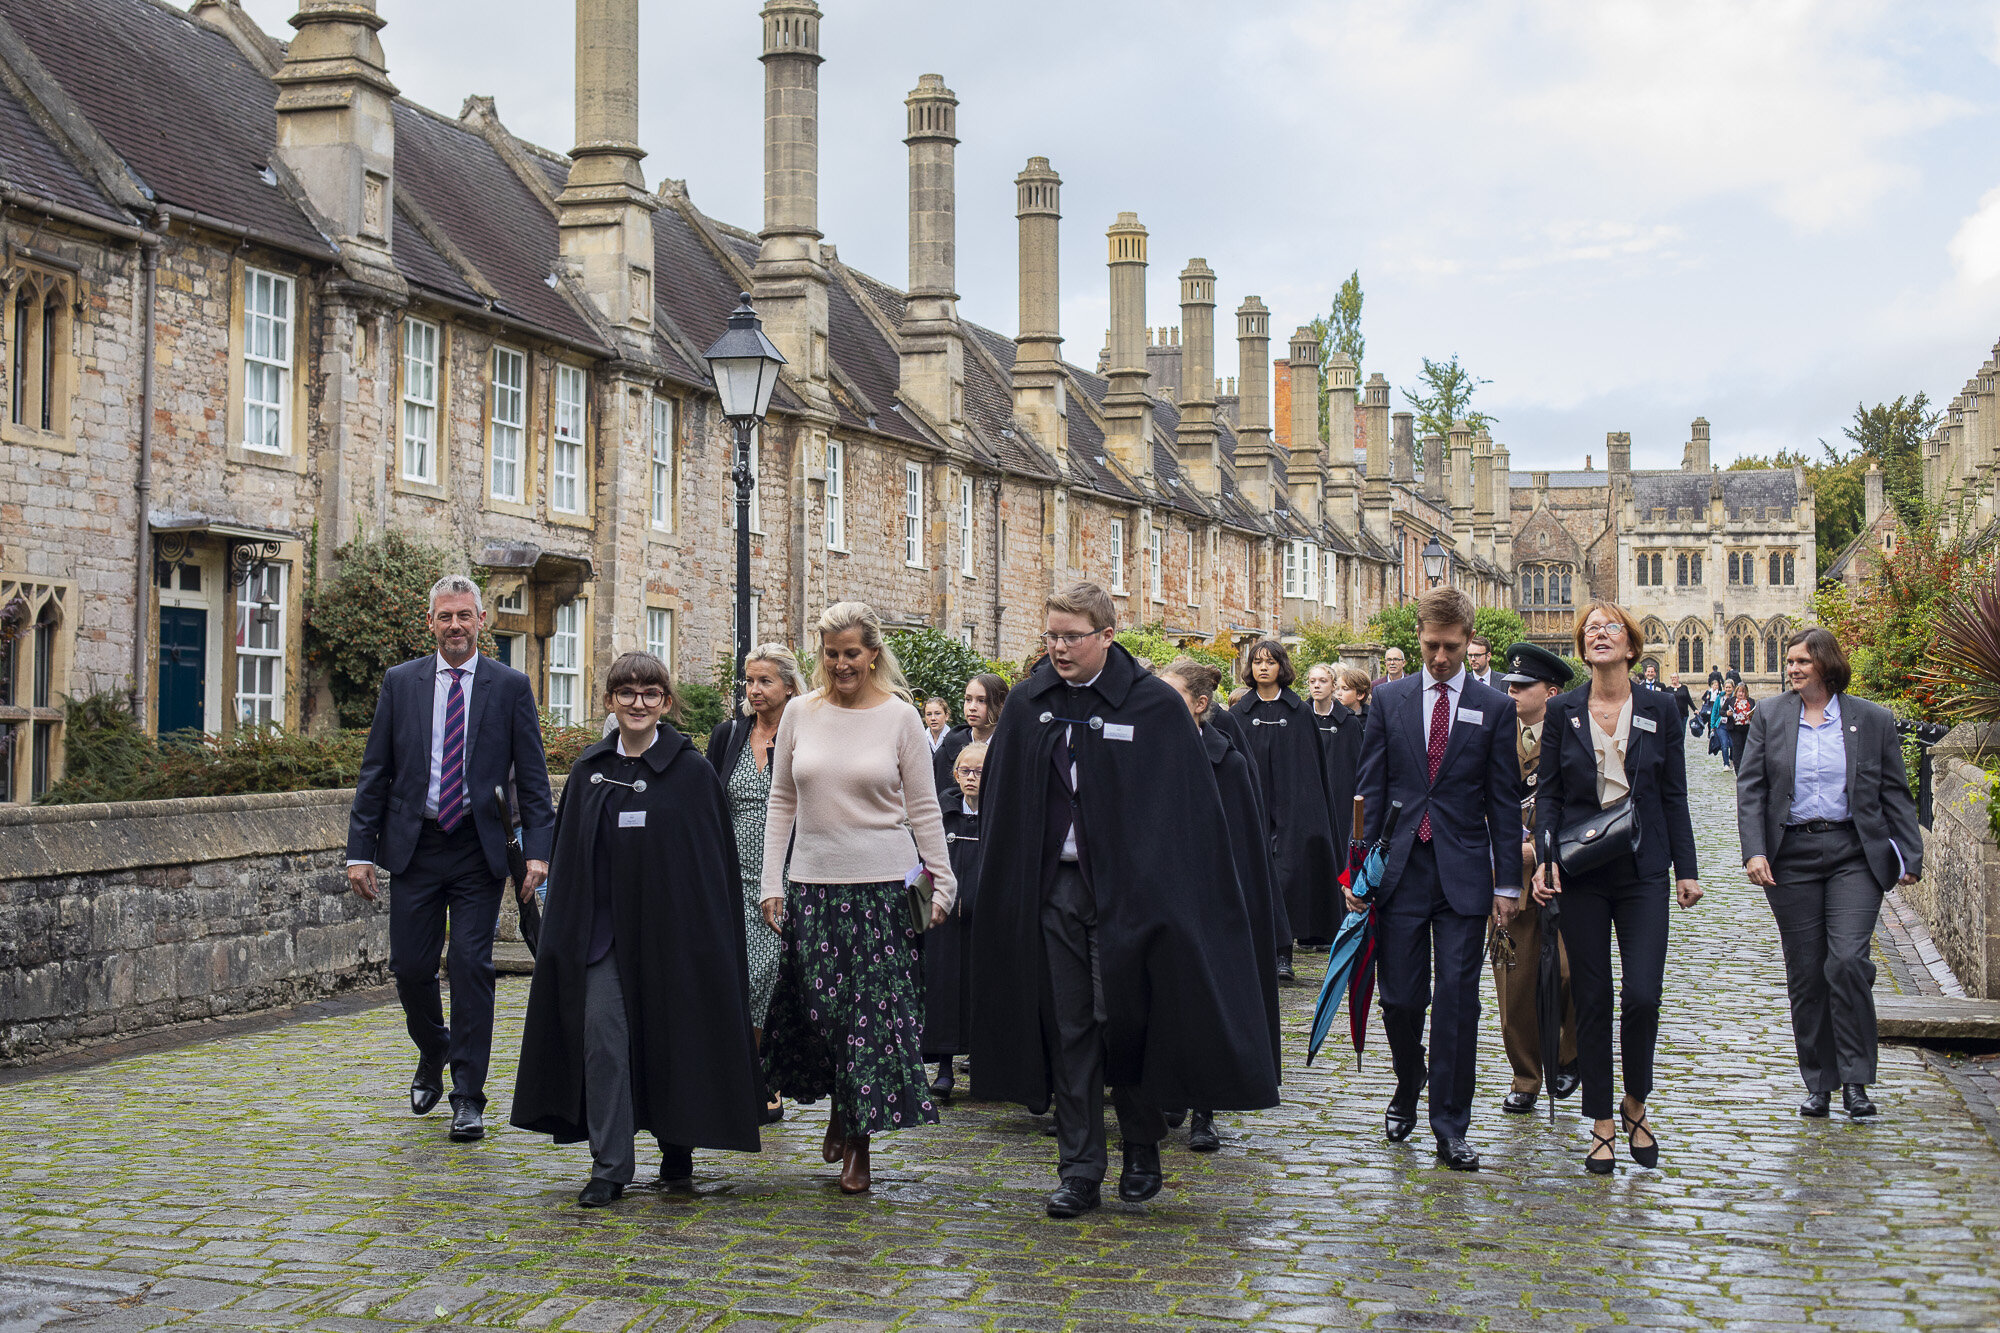 The Royal Party moves down the Vicars' Close